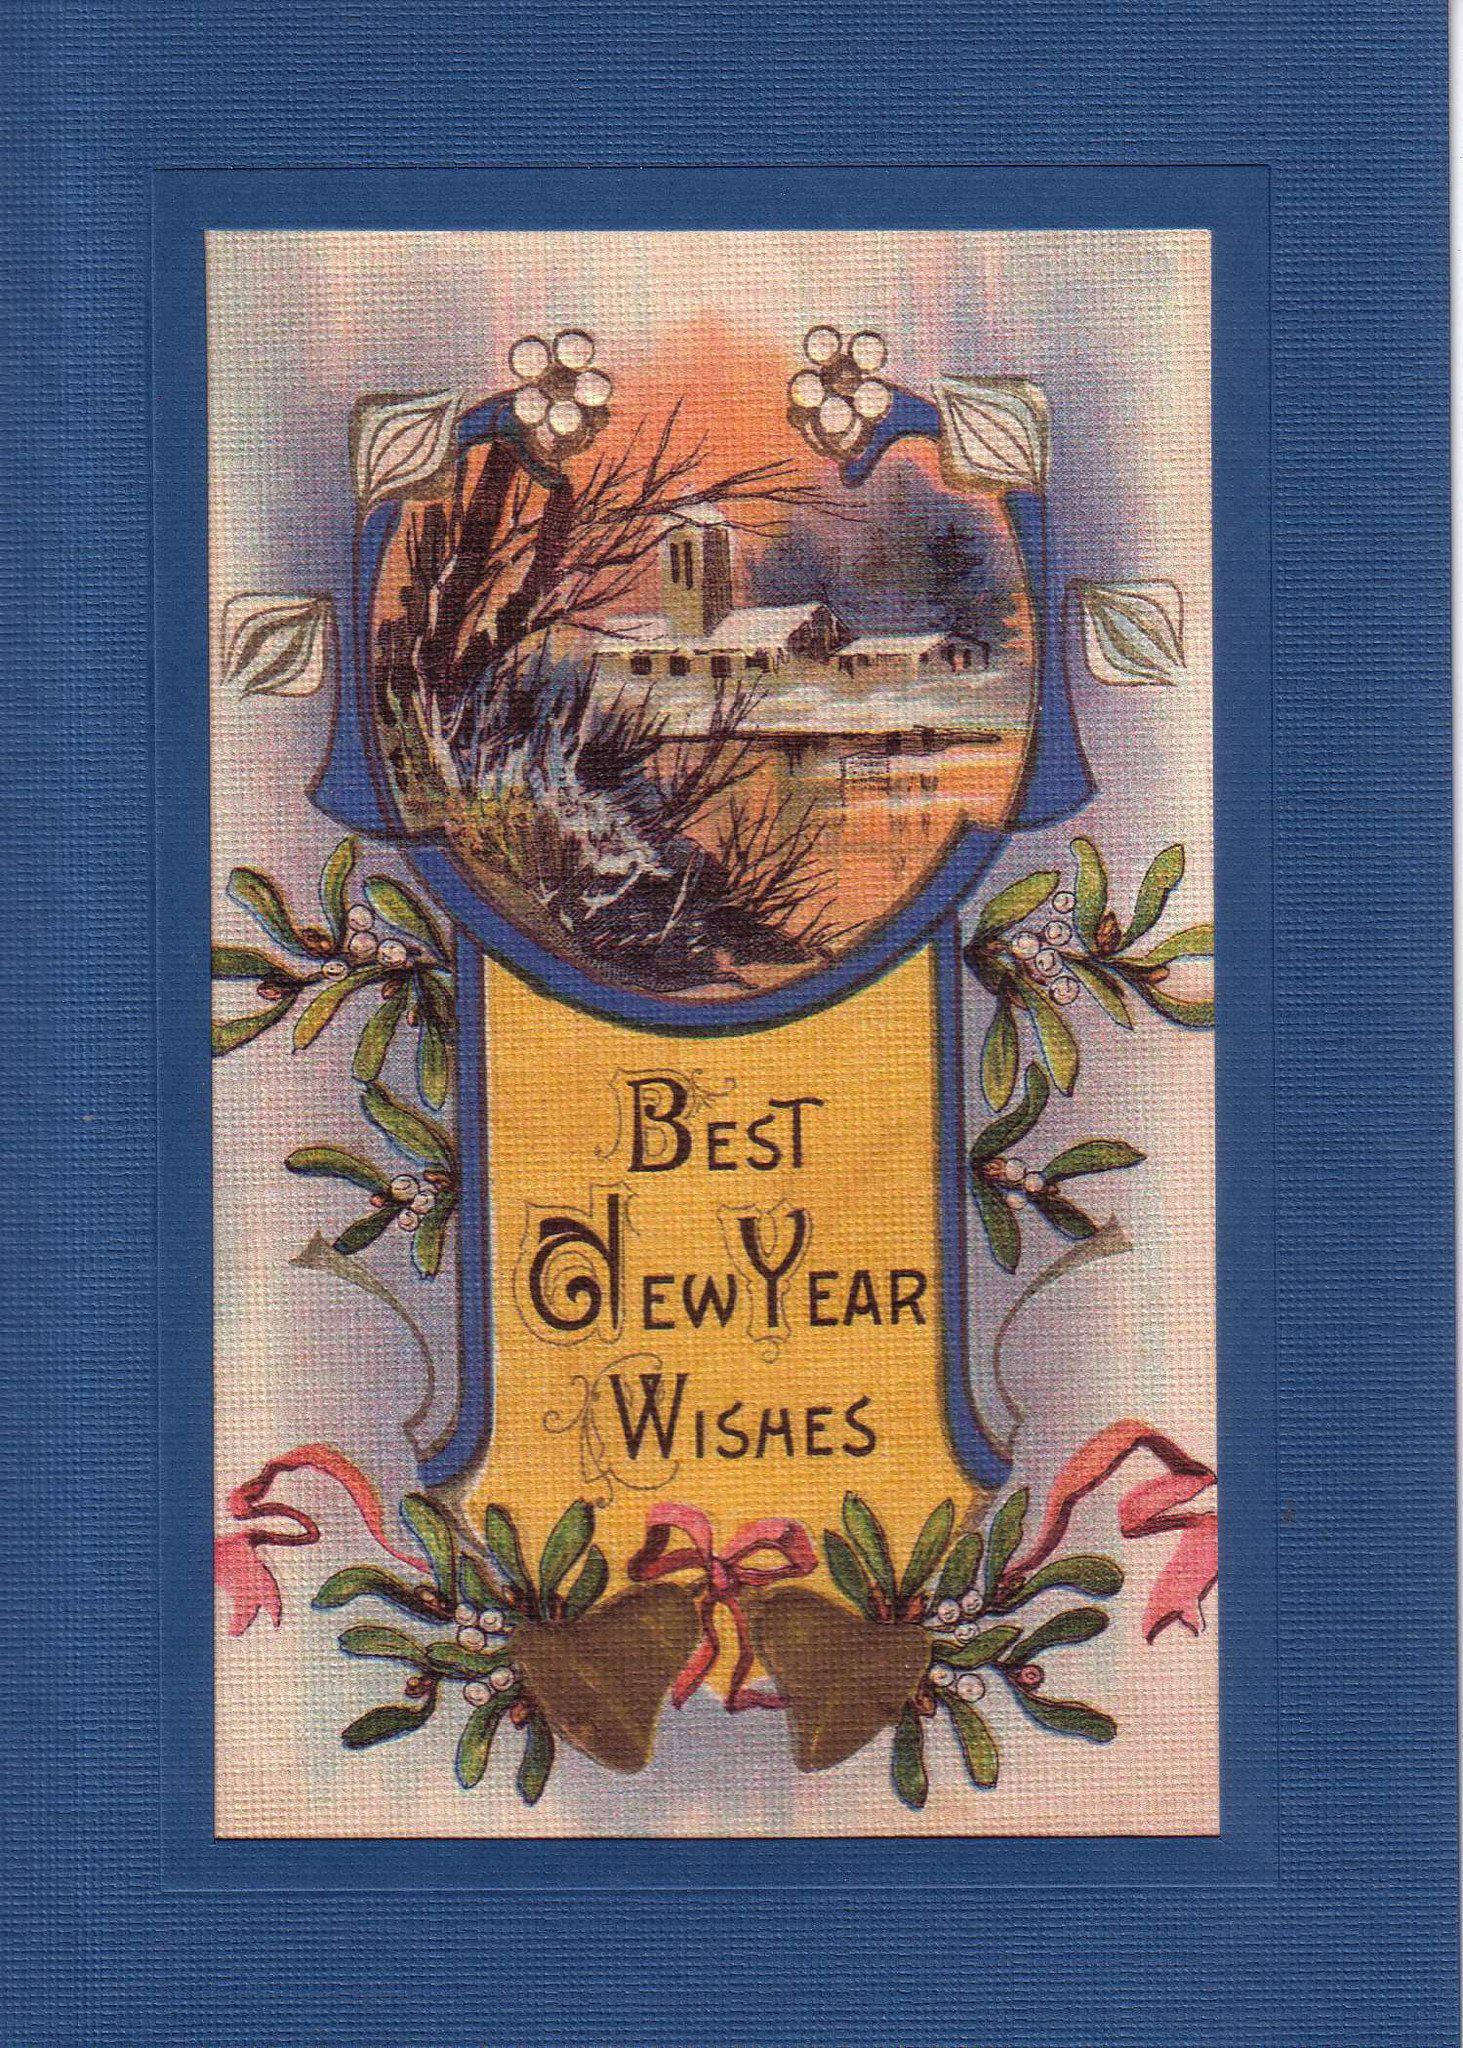 Best New Year Wishes-Greetings from the Past-Plymouth Cards